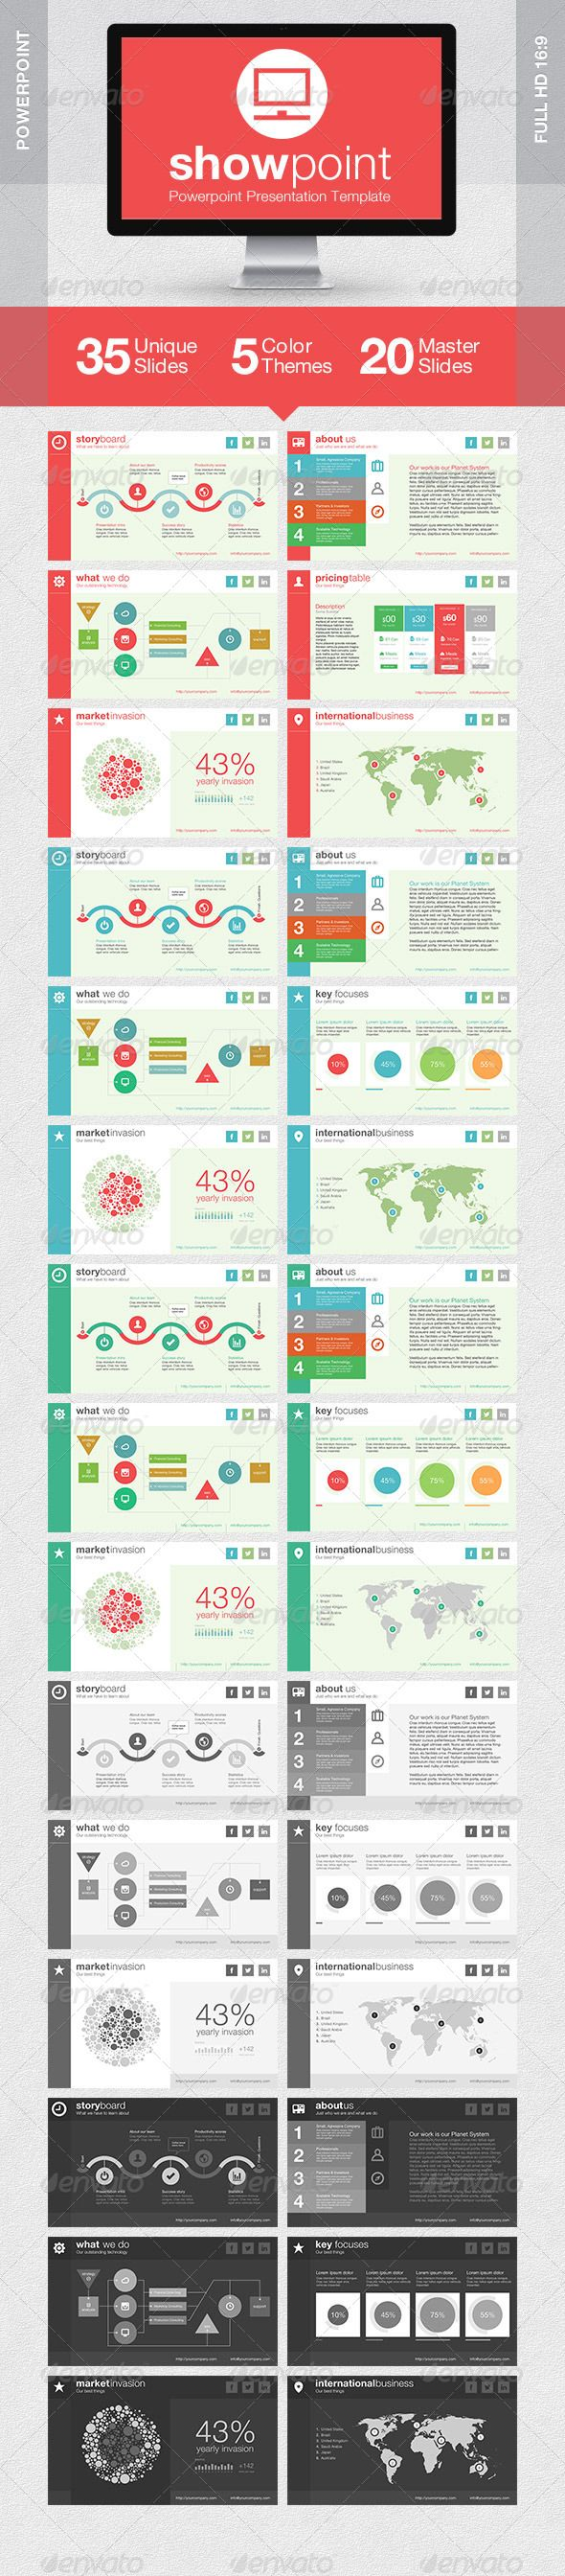 ShowPoint Powerpoint Presentation Template by GraphicRiver.